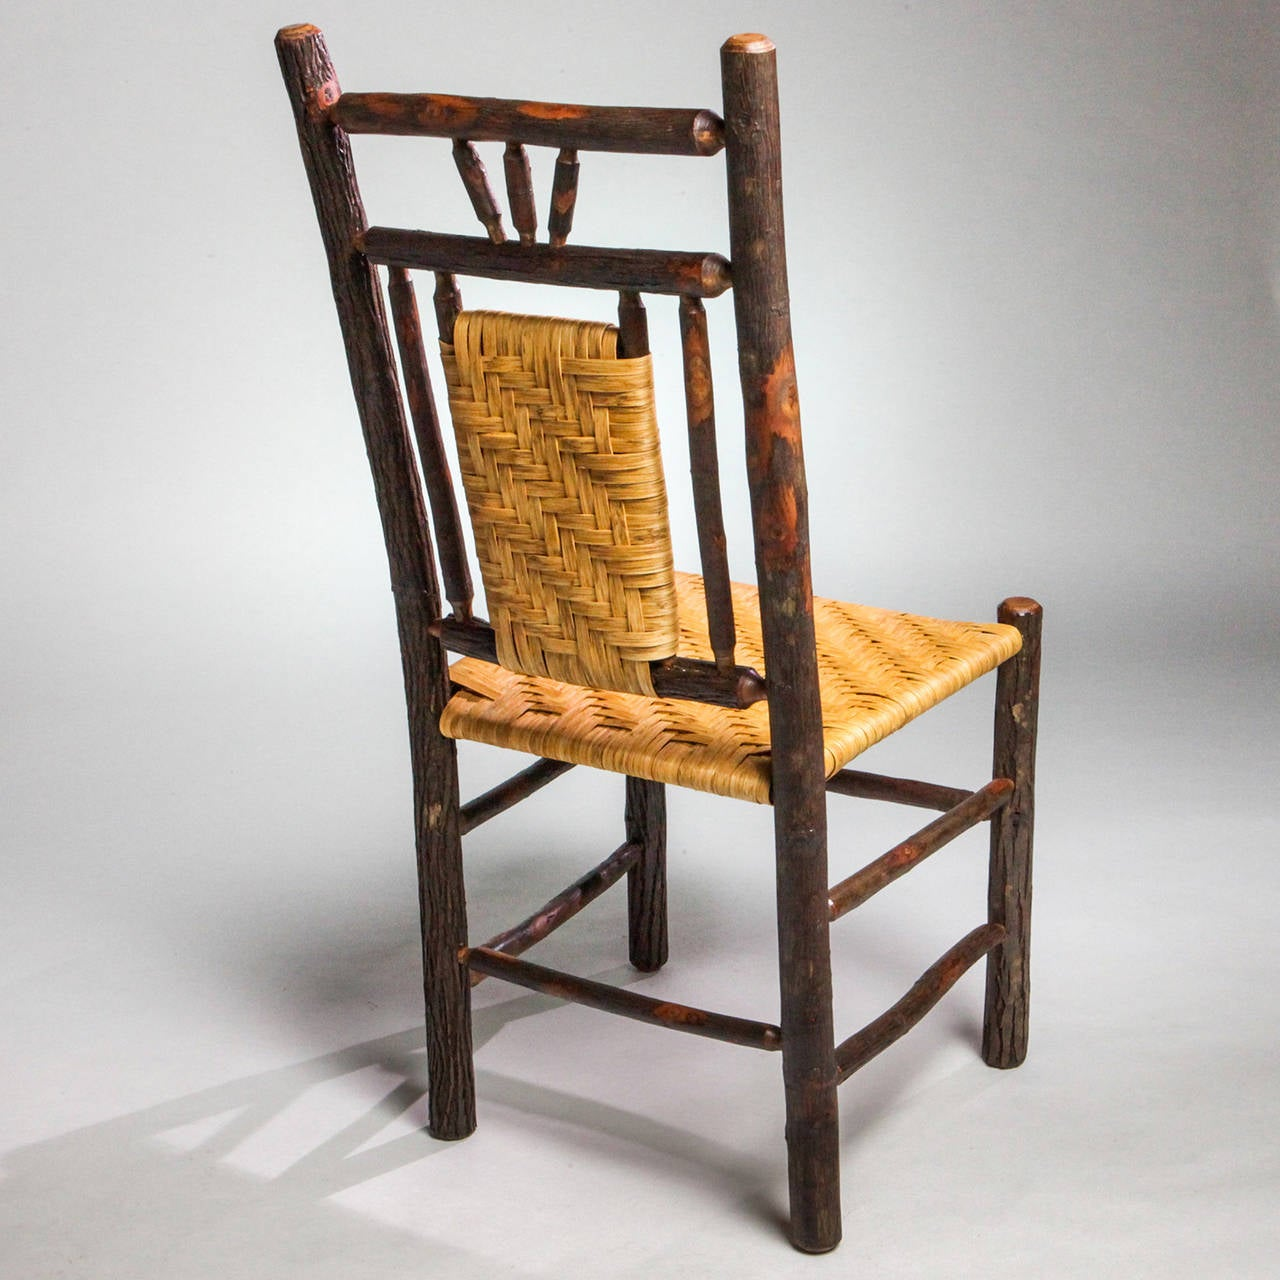 Handcrafted Adirondack hall or dining natural wood chair with woven split bark chair back and seat.